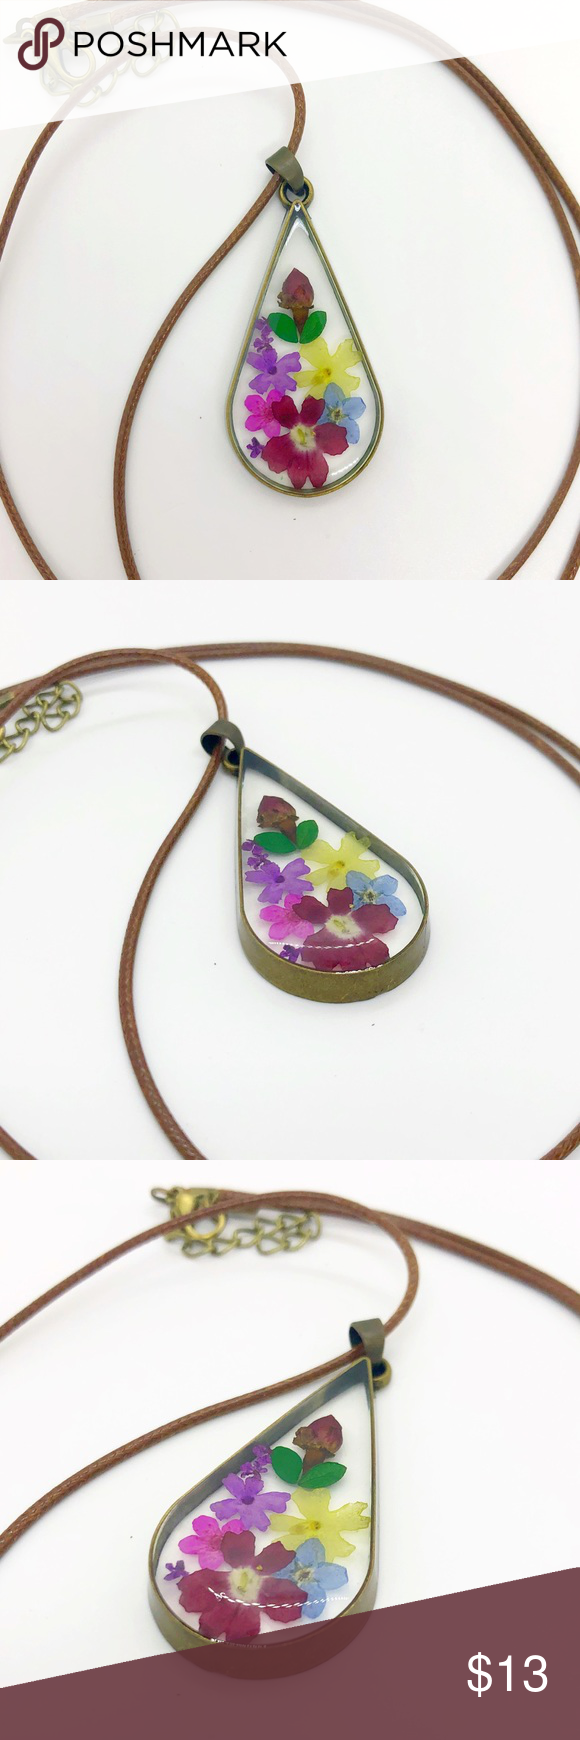 Teardrop Pressed Flower Necklace Real Flowers Gift Love this teardrop design These necklaces are handmade with real pressed dried flowers encased in resin Each piece is s...